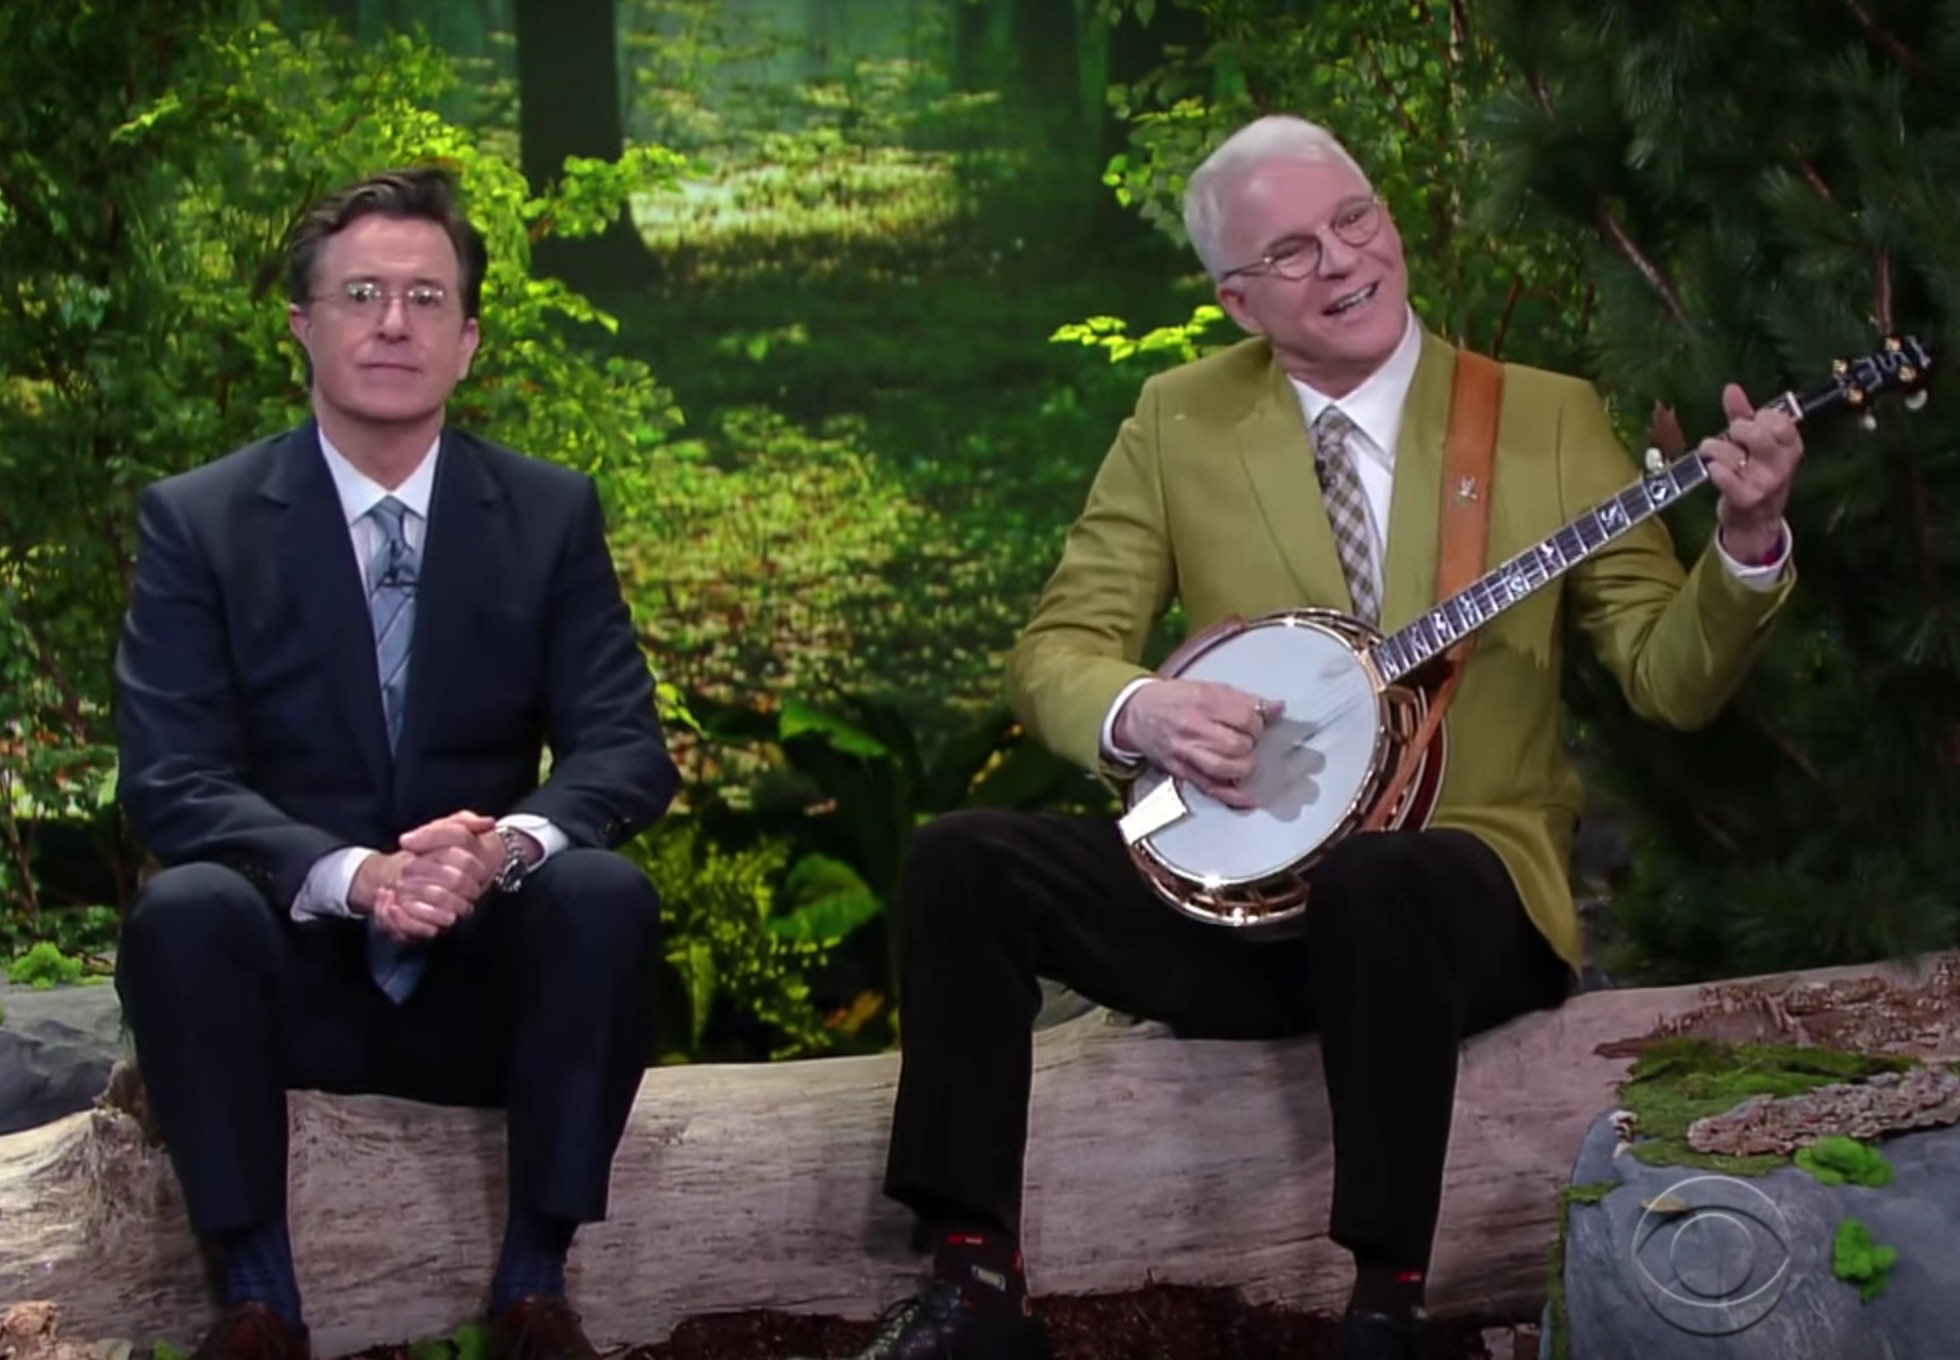 Stephen Colbert and Steve Martin's song about friendship is too funny